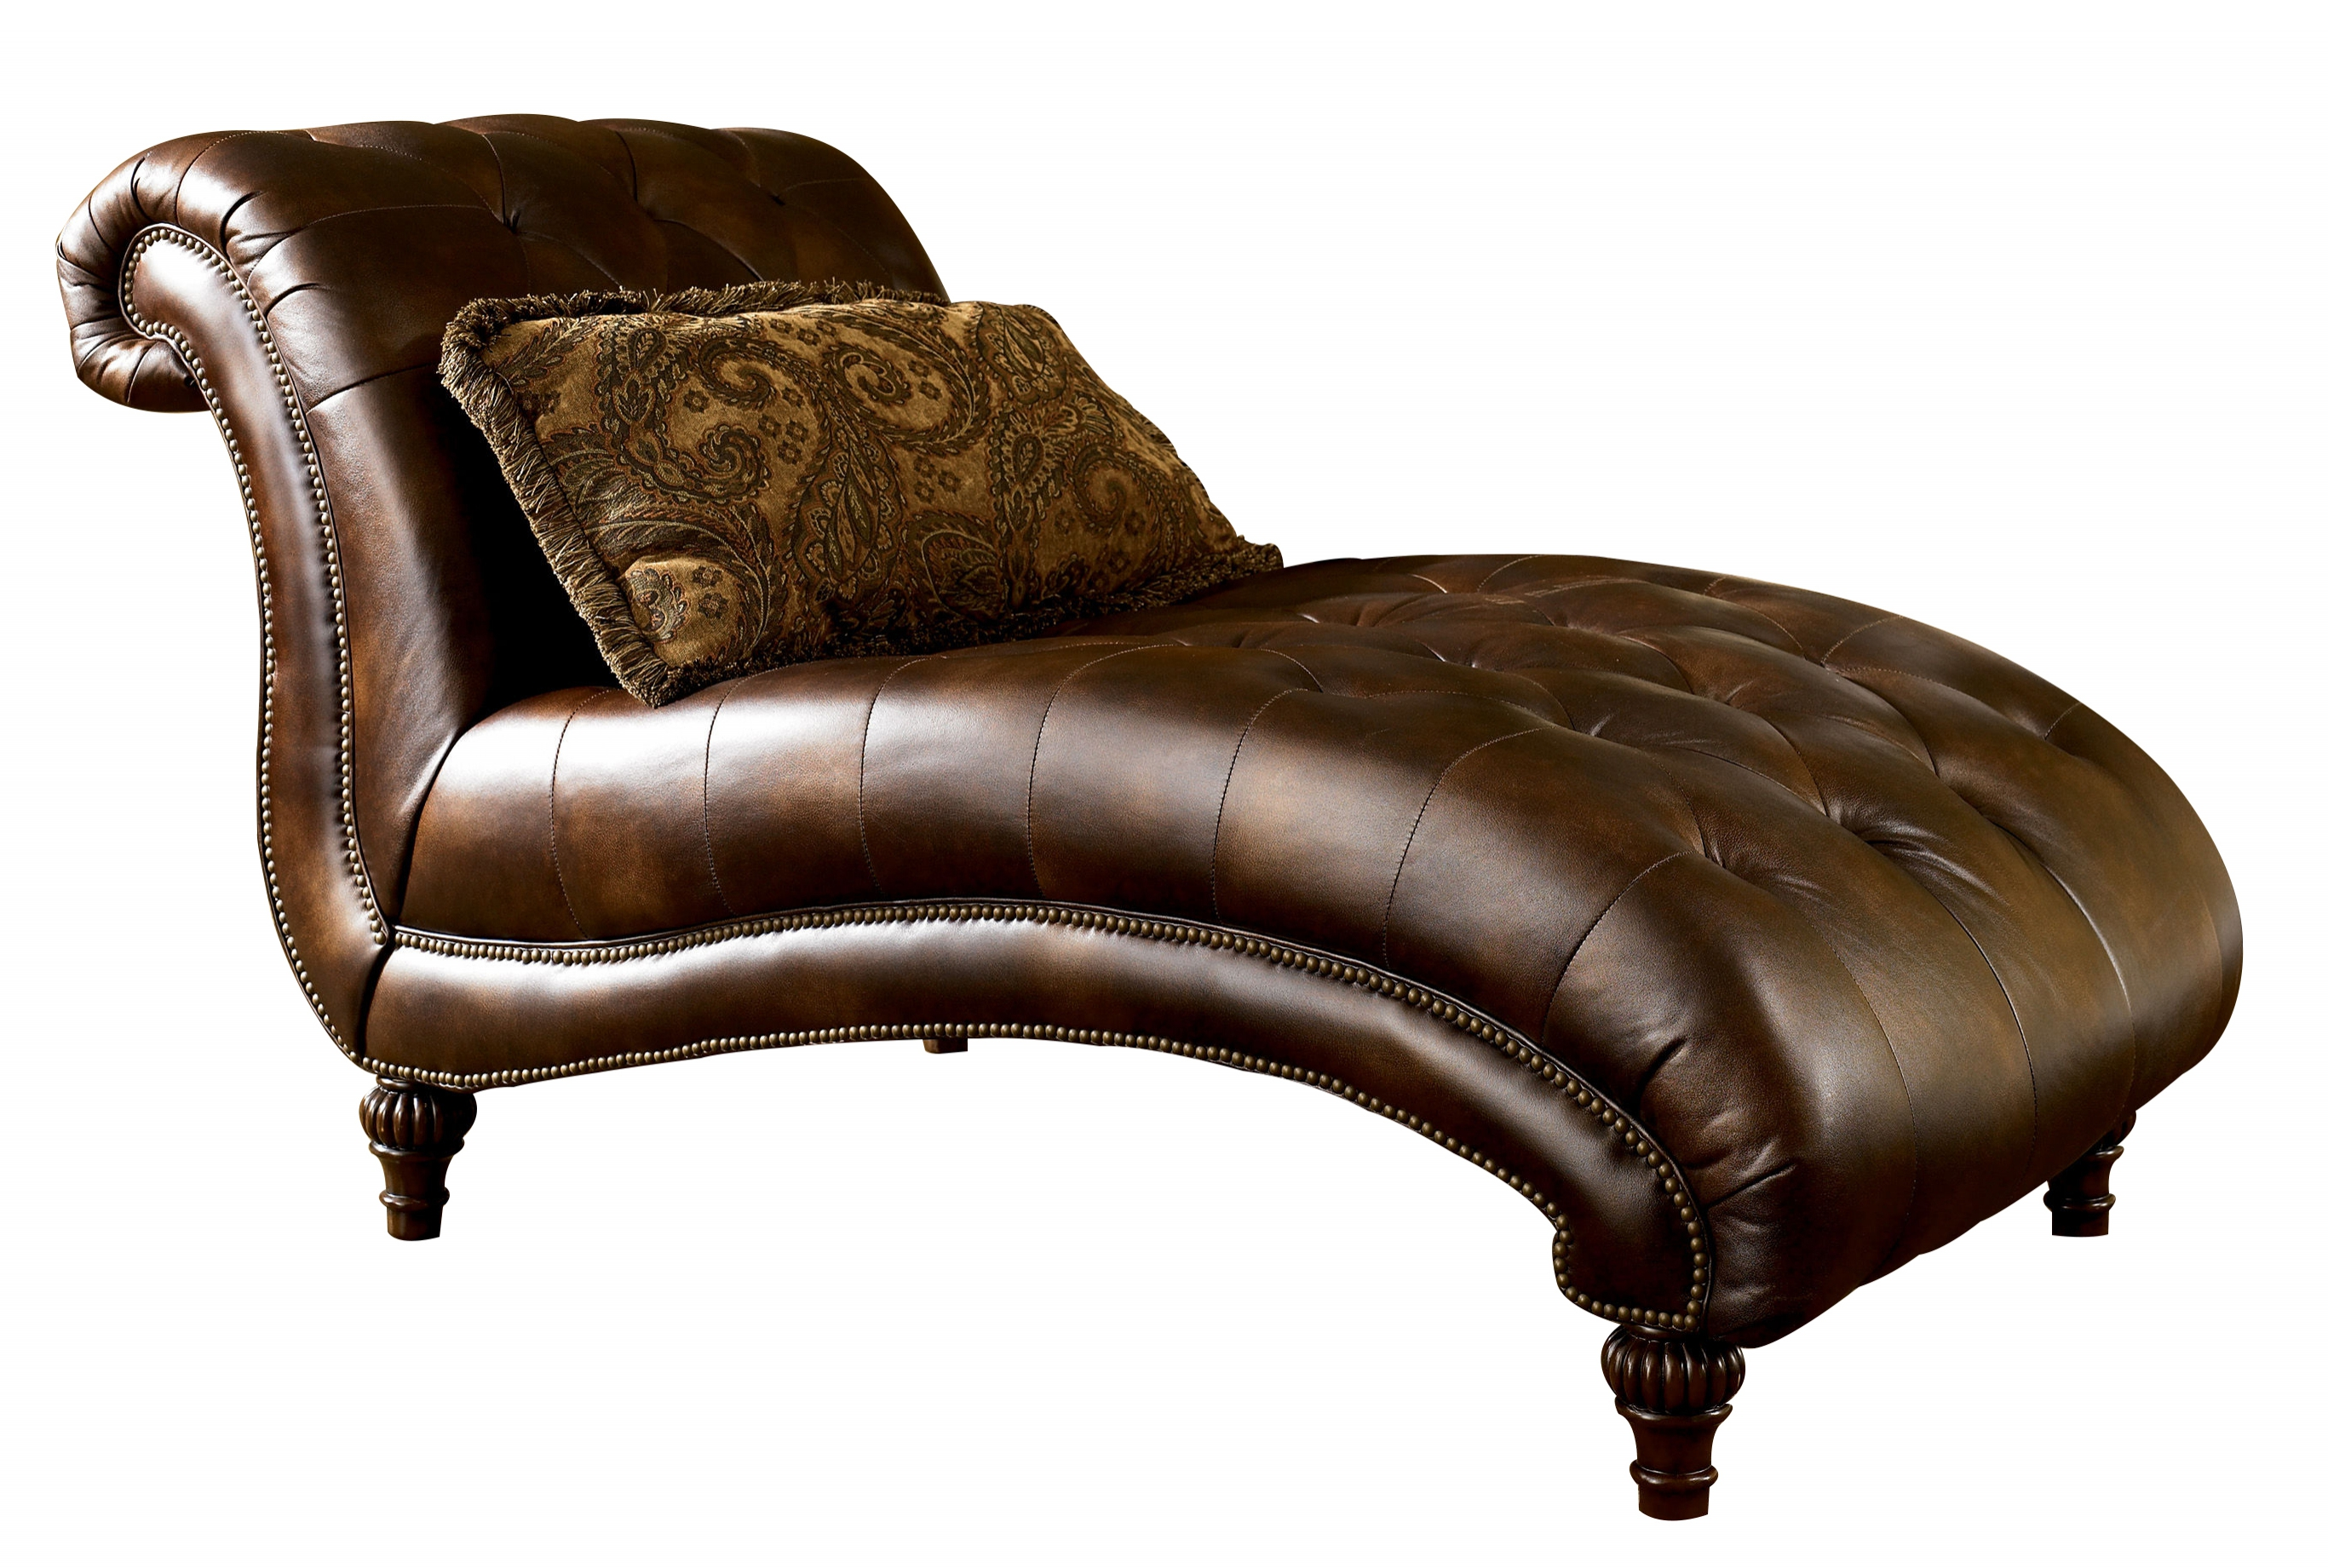 Traditional antique fabric claremore chaise lounge the for Chaise lounge antique furniture